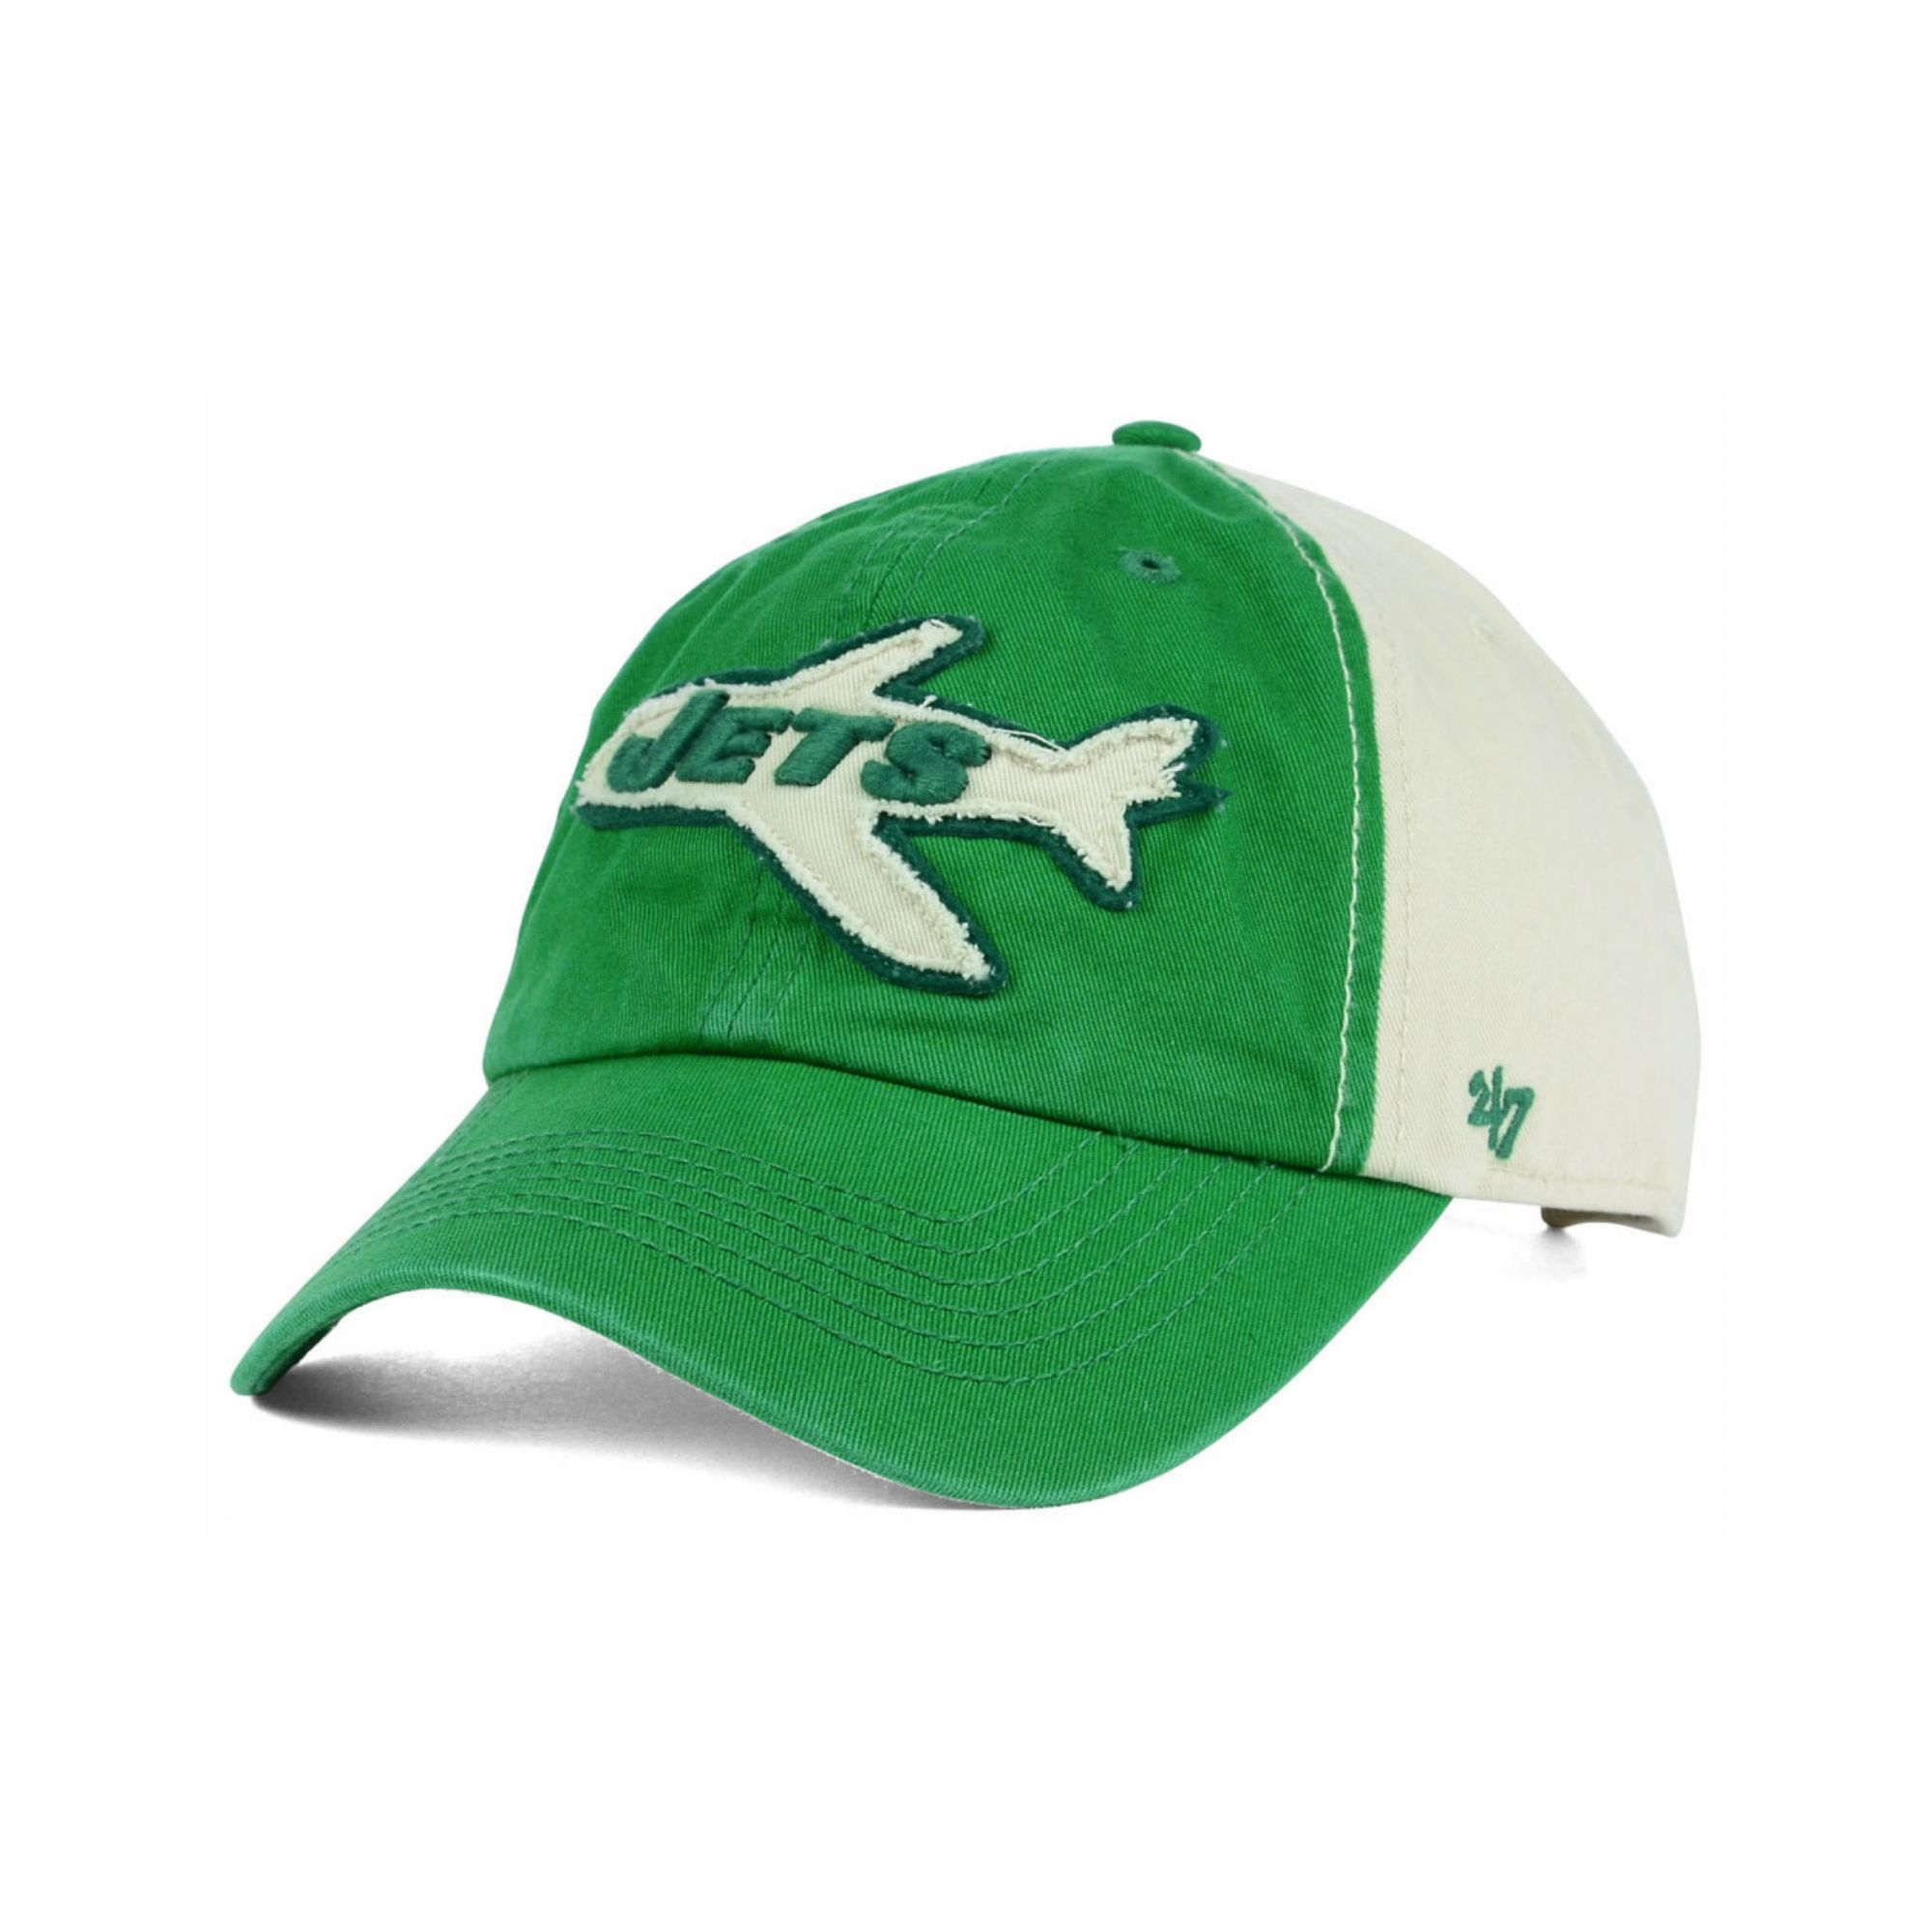 best sneakers 96cd2 68f98 ... discount 47 brand new york jets nfl derby clean up cap in green for men  . ...